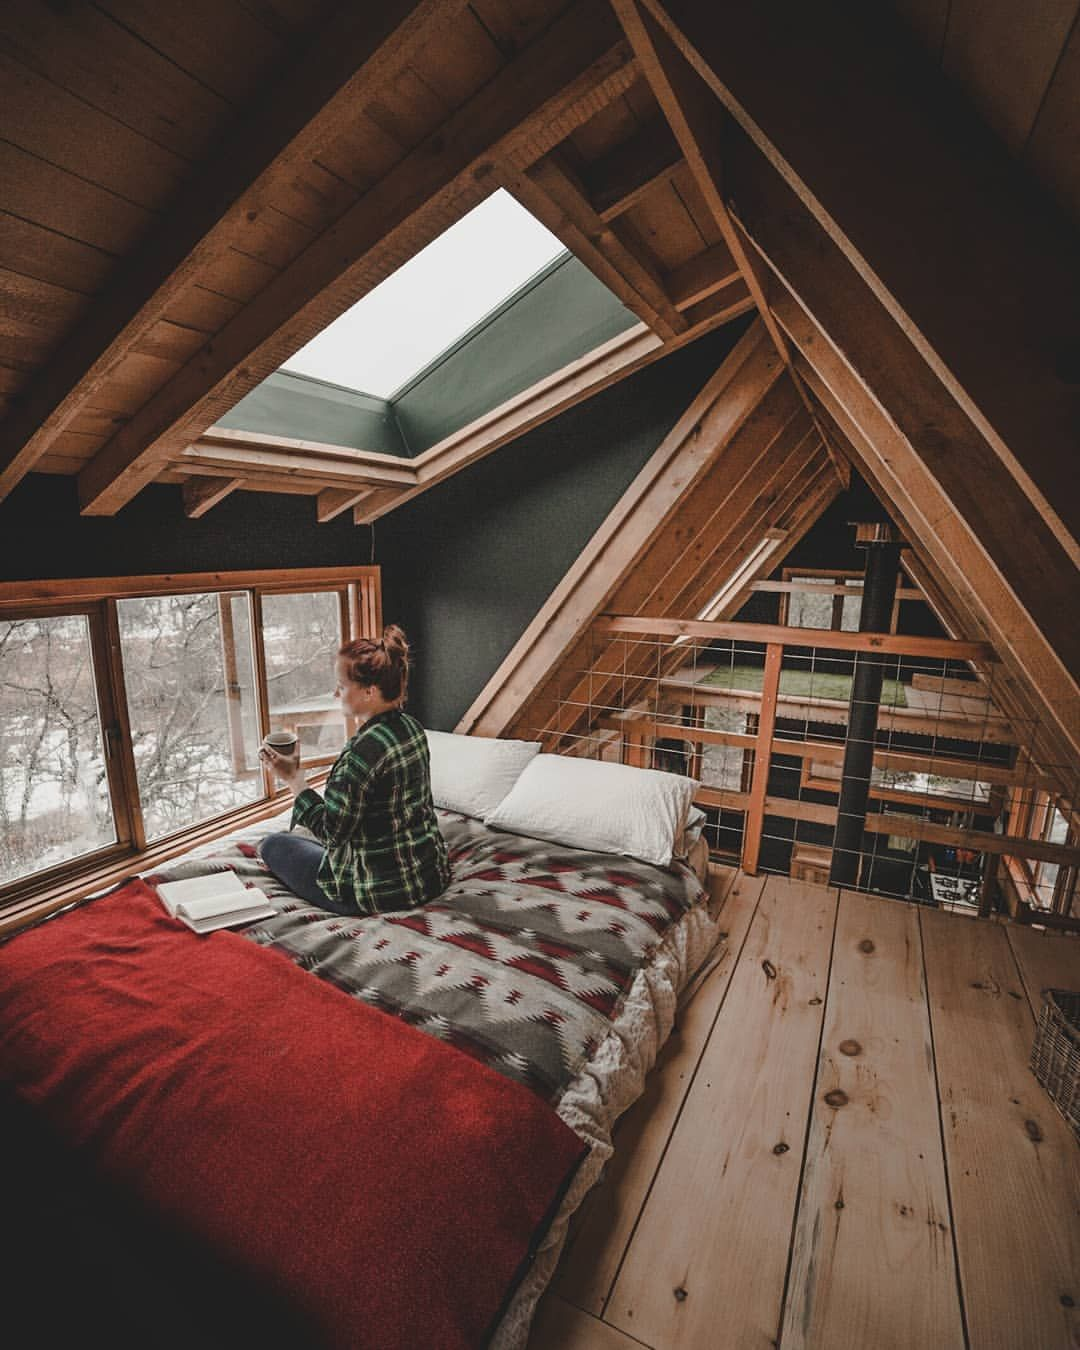 The Best Airbnb Cities For Home Decor Ideas: Waiting For That Spring Thaw Like... ↟ Cabin By